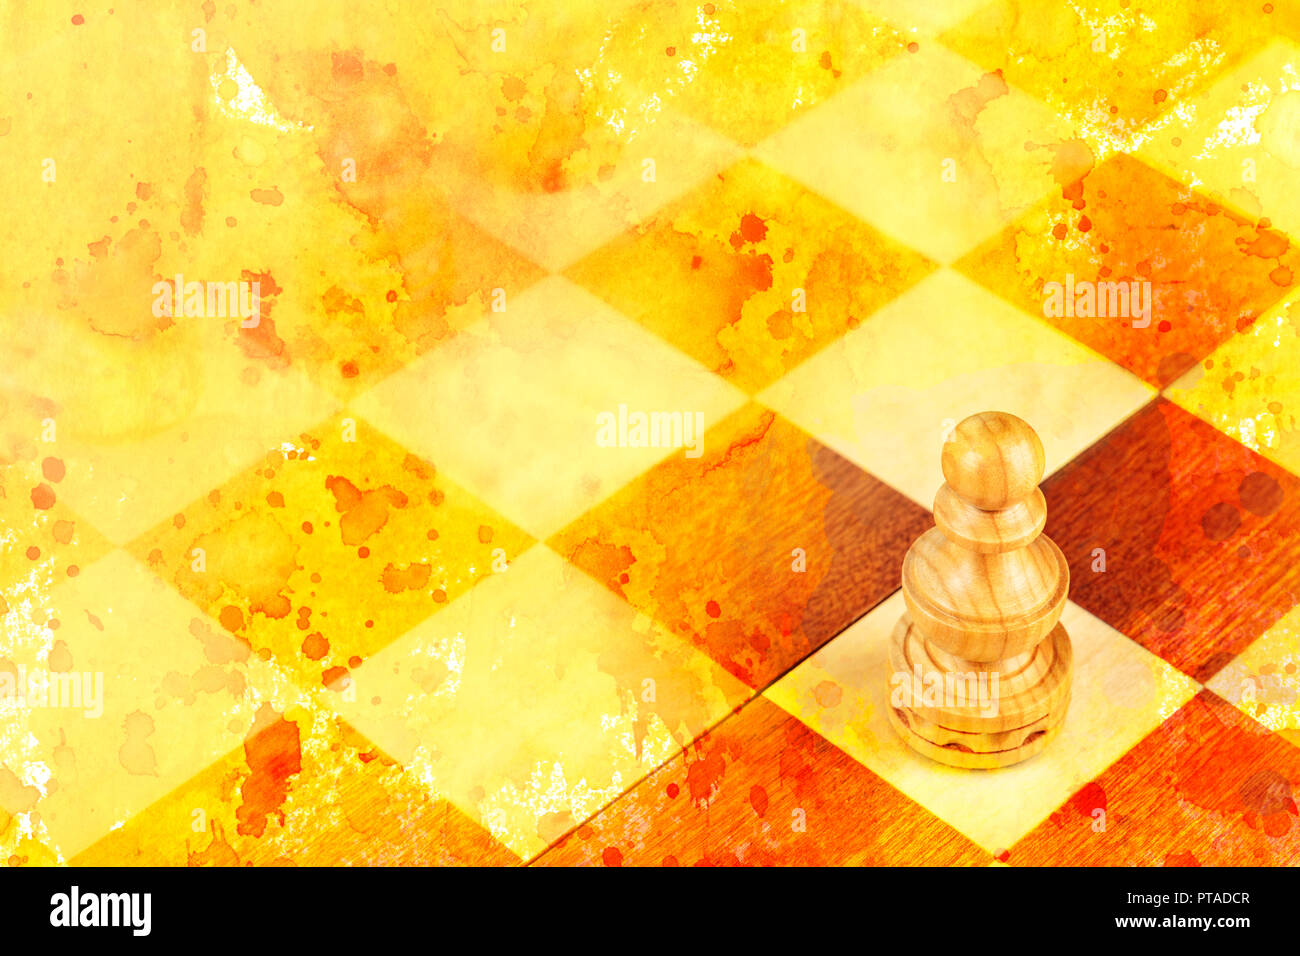 A pawn on a chessboard, a metaphor for the first step, with a golden texture - Stock Image